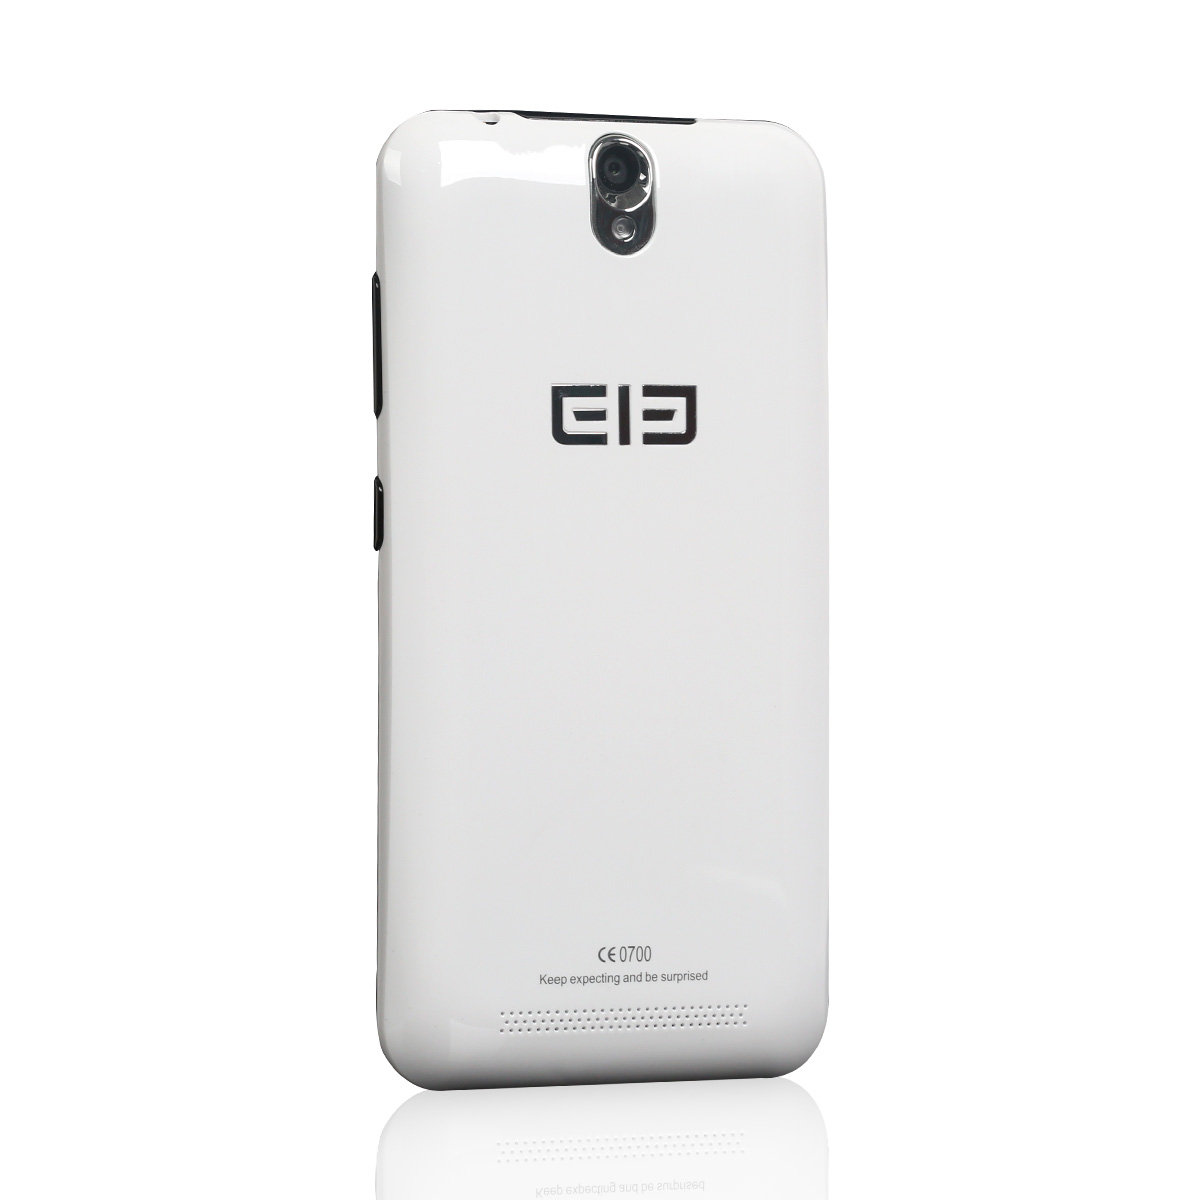 Elephone P4000 Smartphone Android 5.1 64bit MTK6735P Quad Core 4600mAh 5 inch HD White